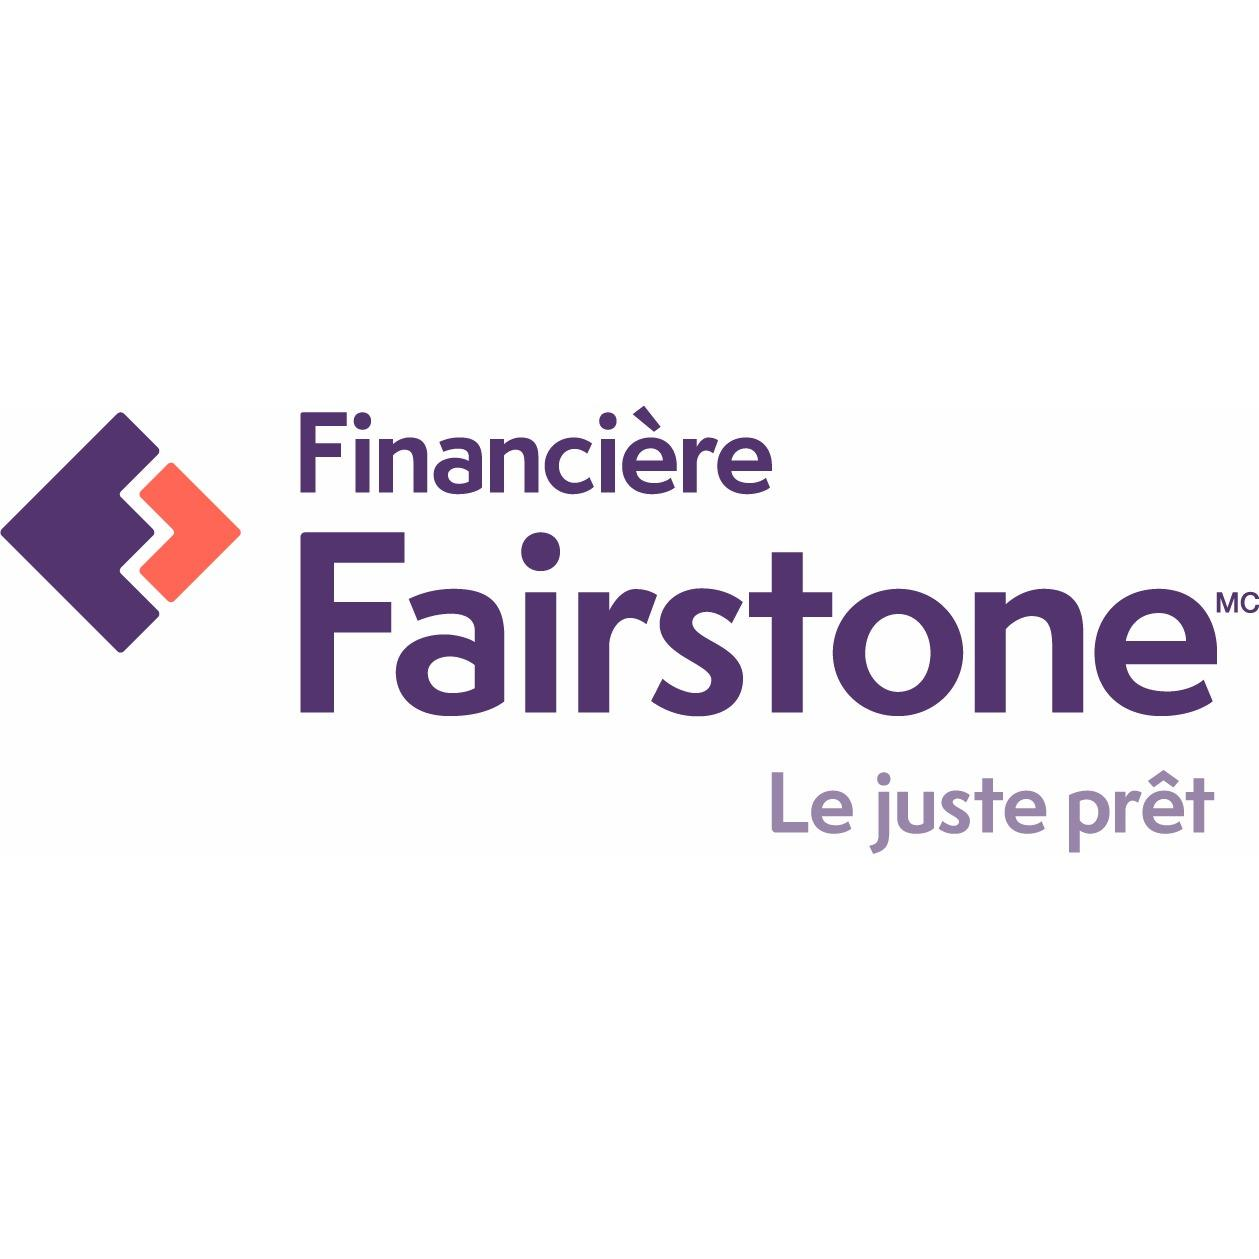 Fairstone, formerly CitiFinancial® à Quebec